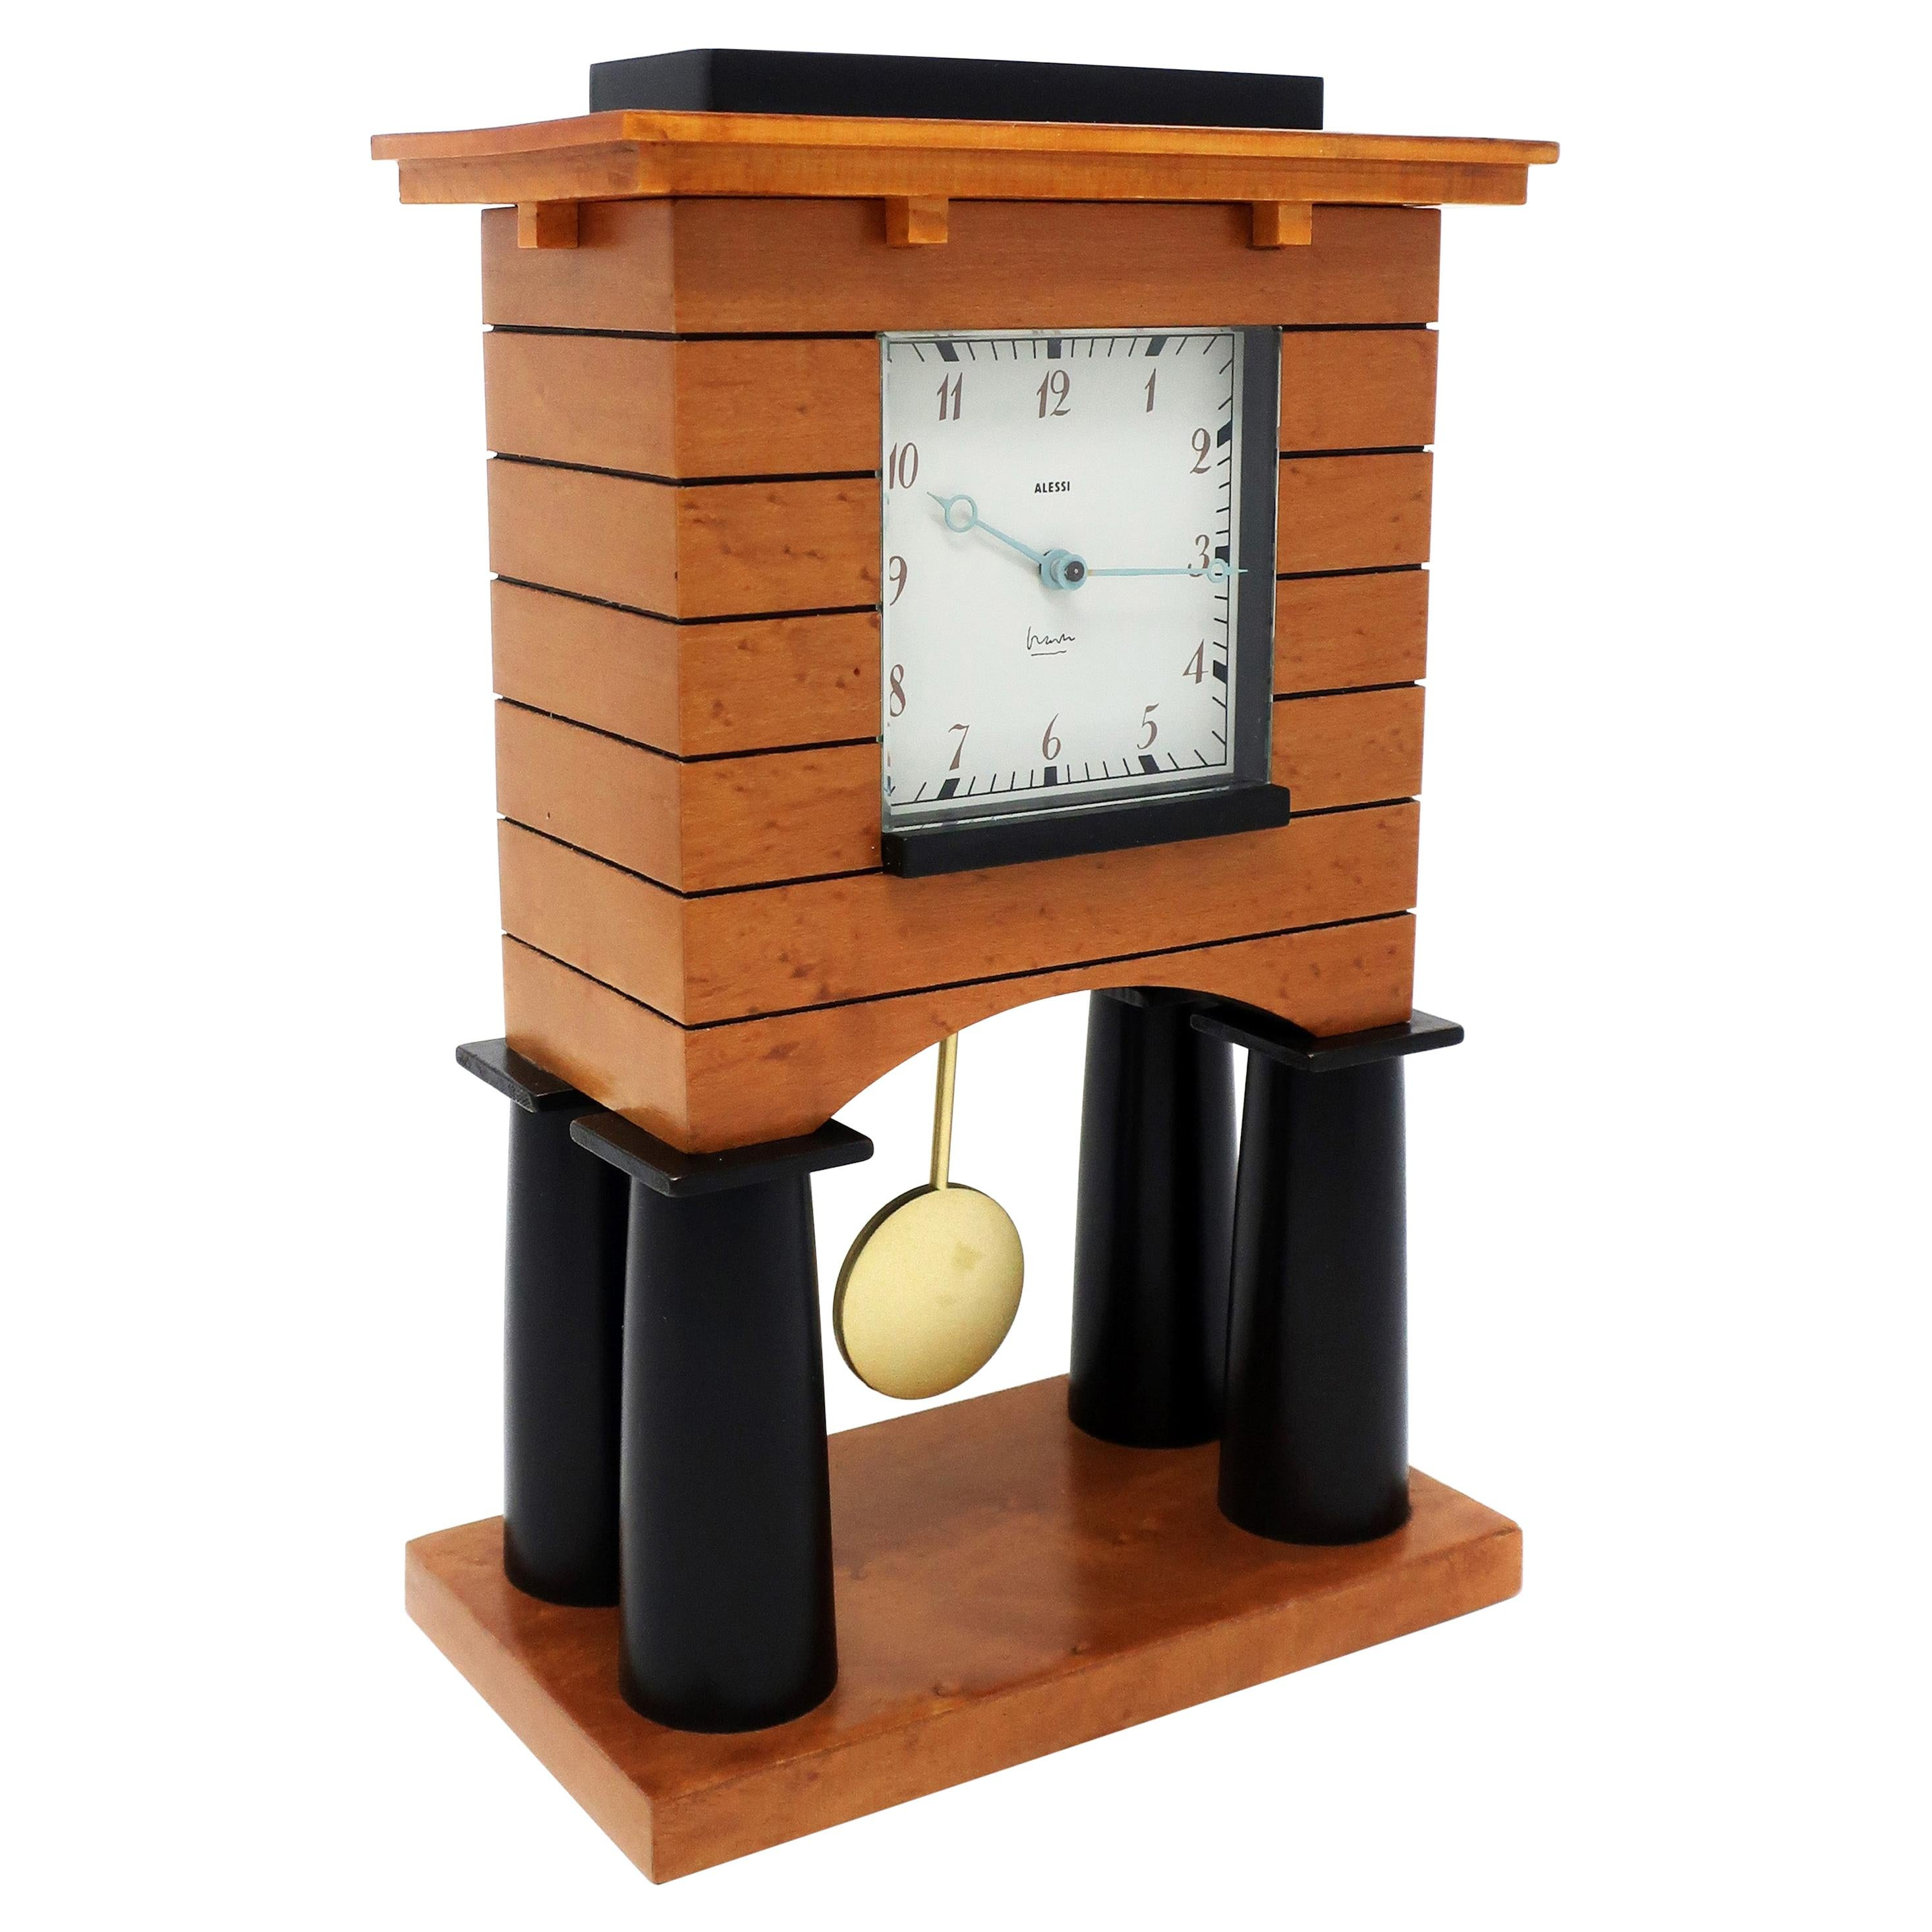 Postmodern Mantle Clock by Michael Graves for Alessi